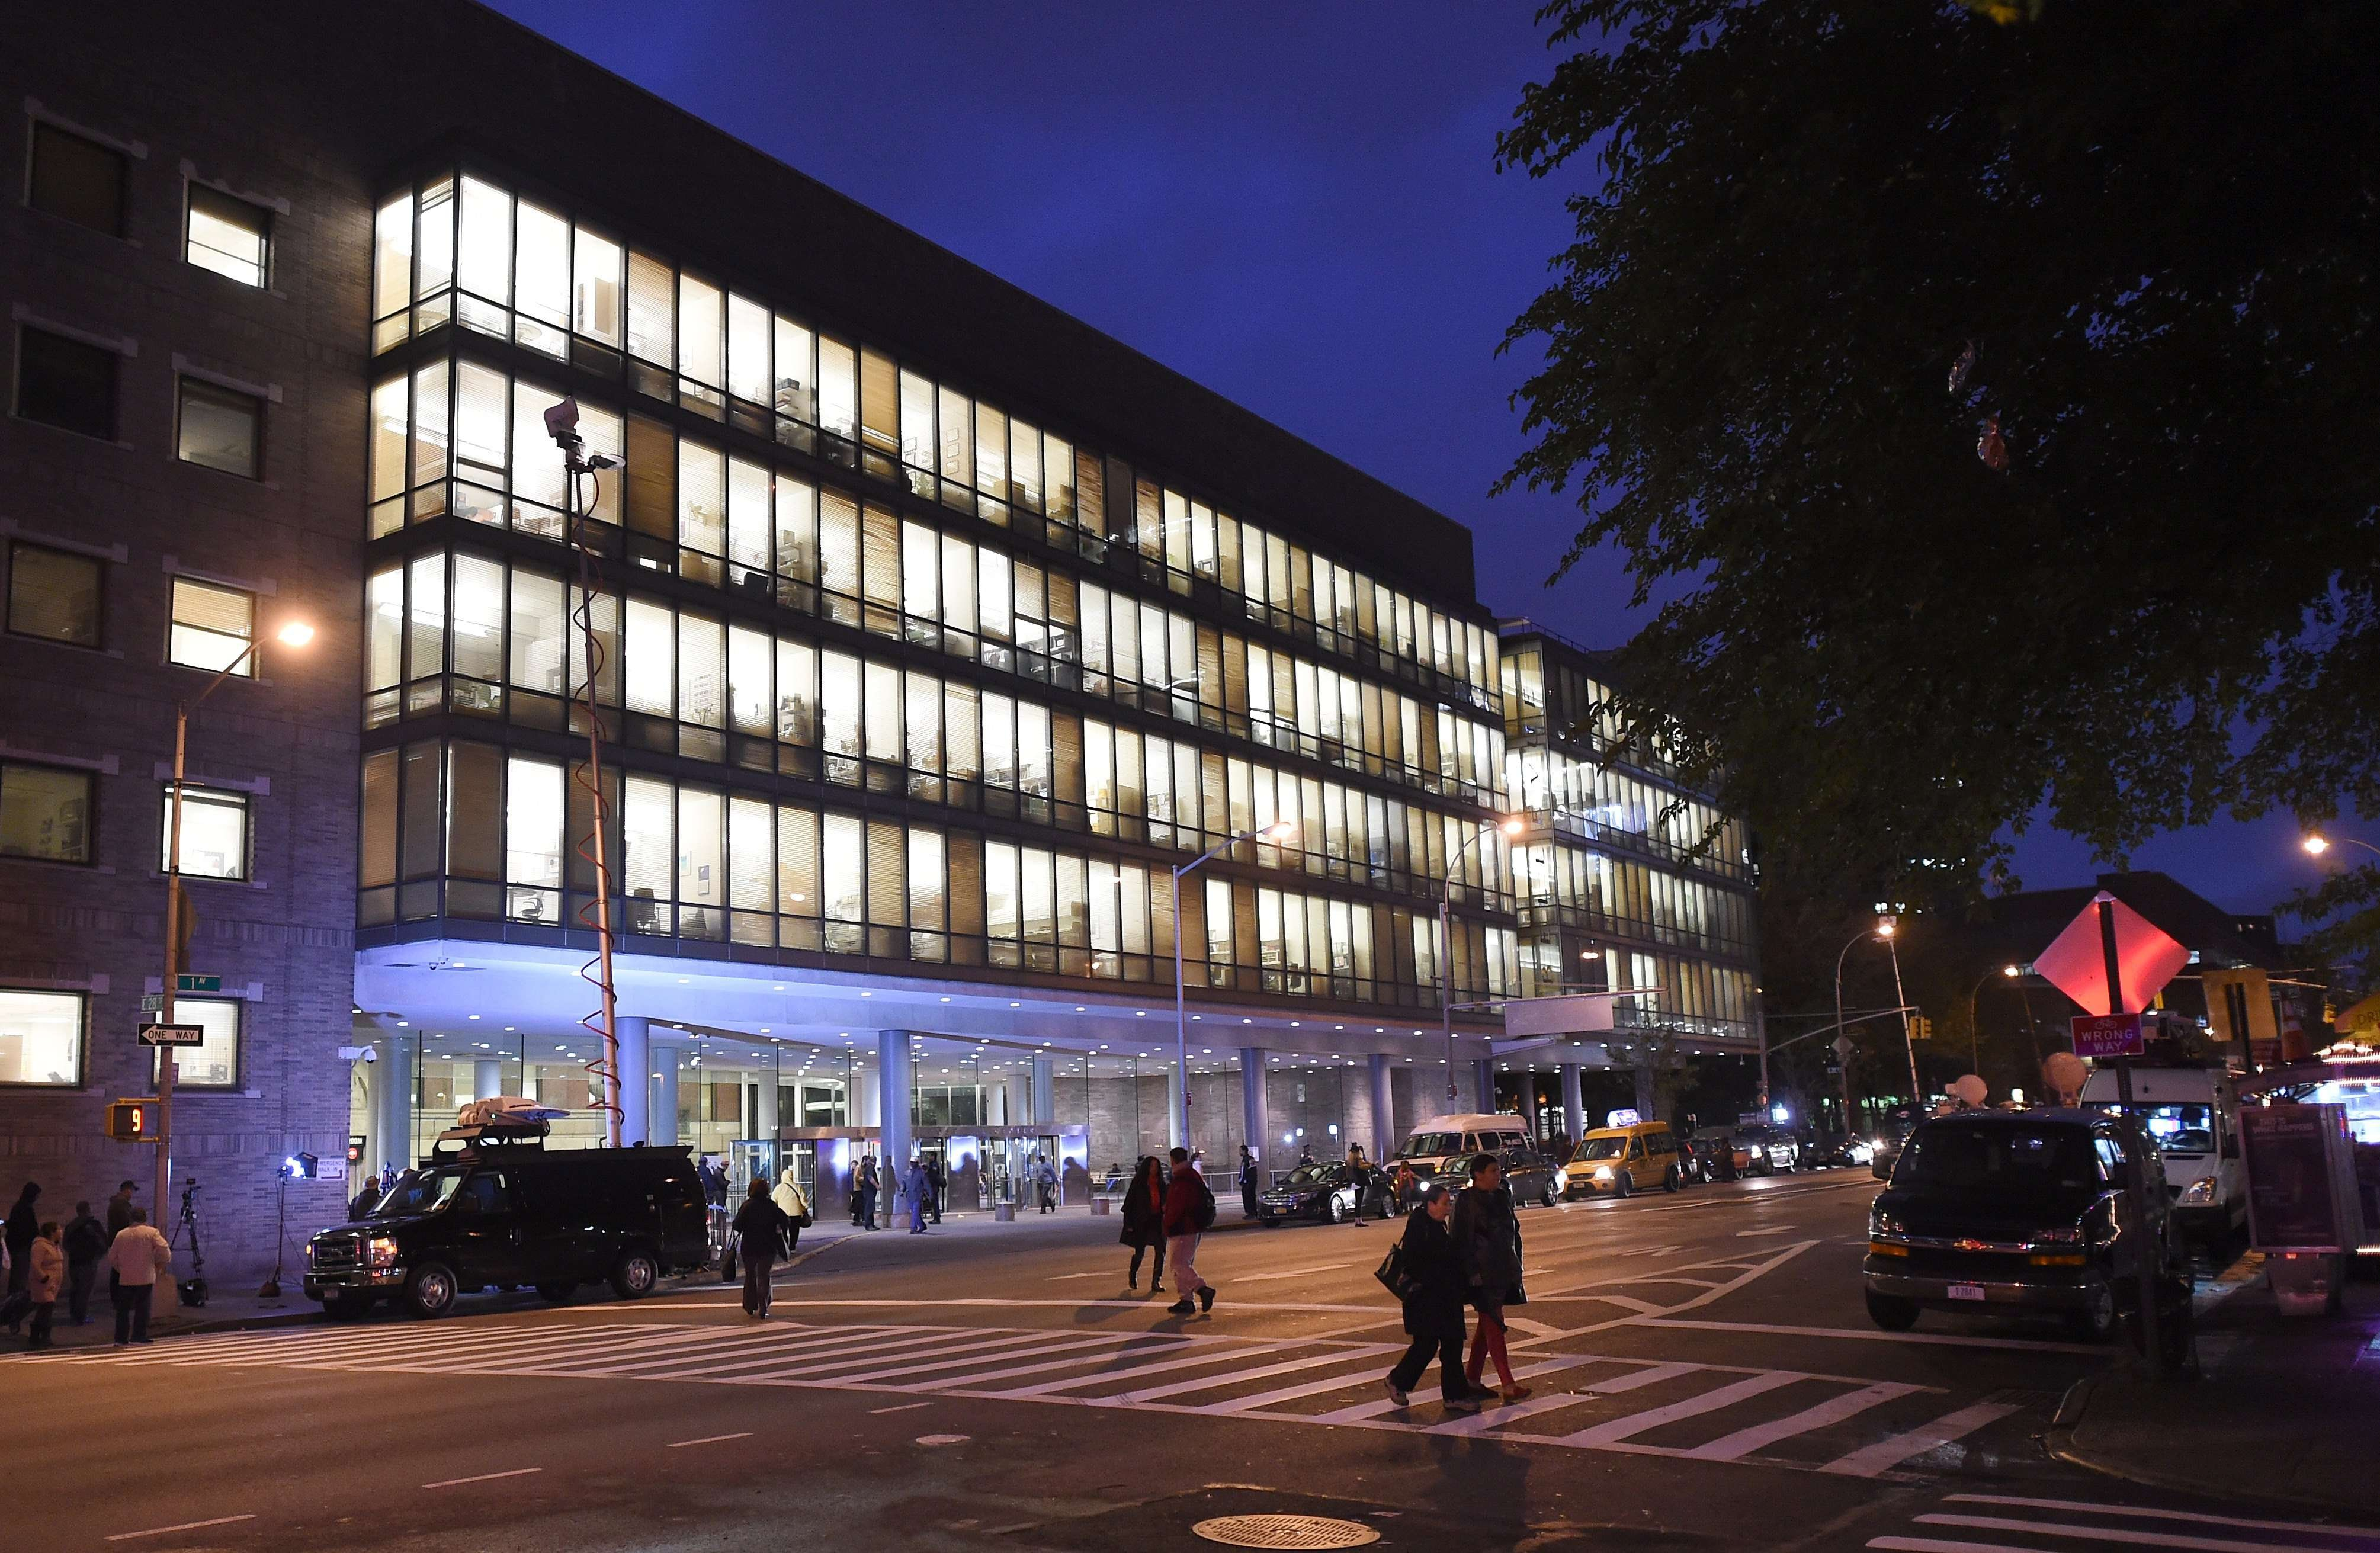 The entrance to  Bellevue  Hospital on Oct. 23, 2014 after a doctor who recently returned to New York from West Africa was rushed  with a fever t o be tested for possible Ebola, the city's health department said.